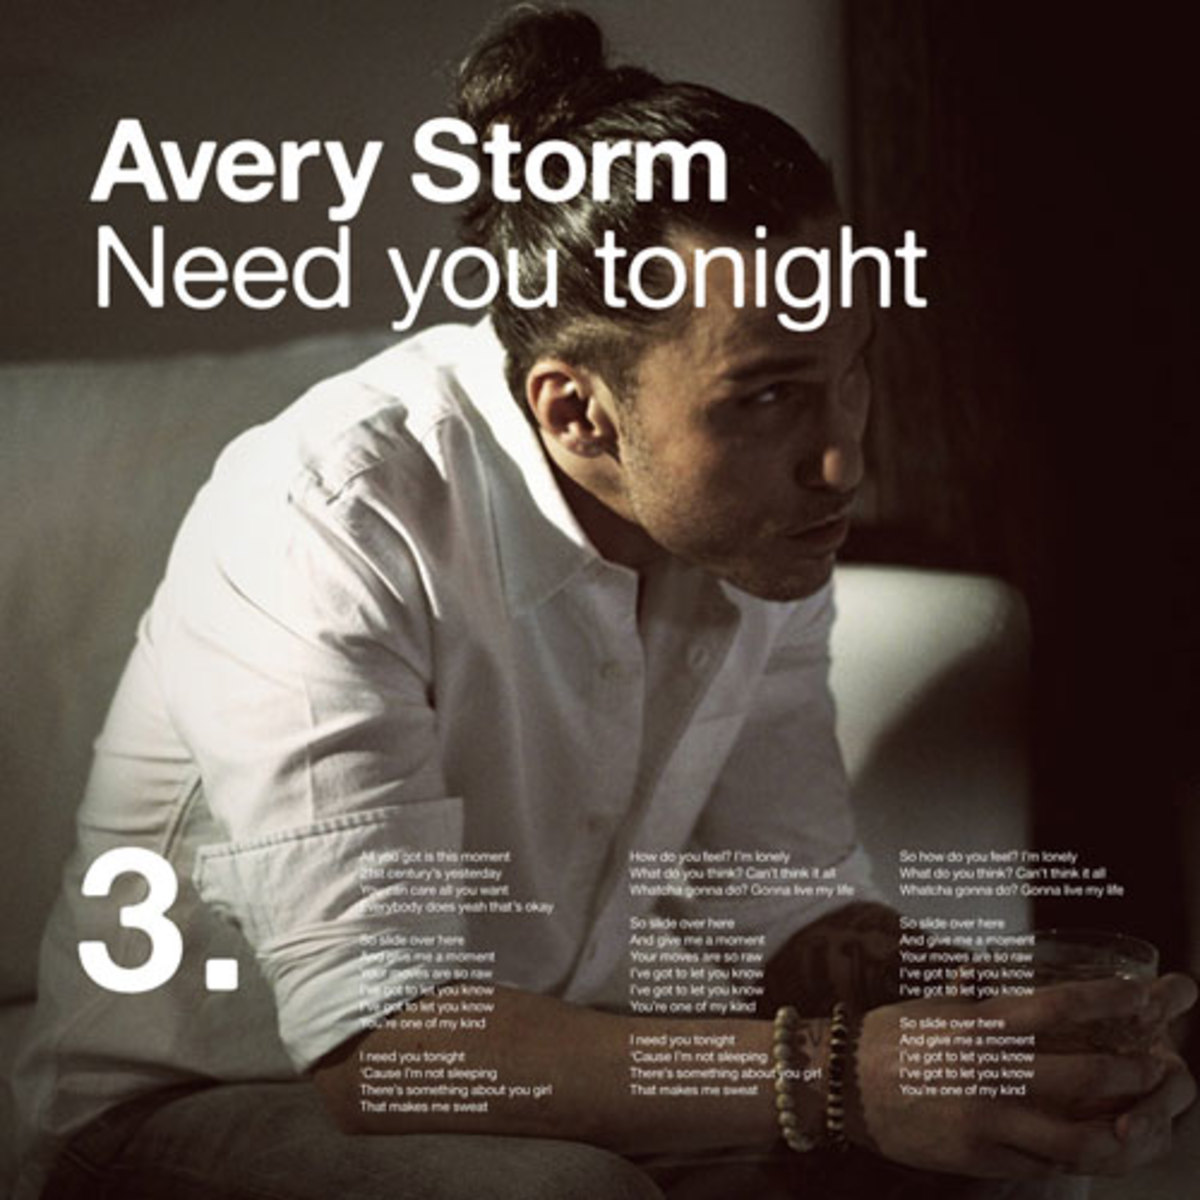 averystorm-needyoutonight.jpg